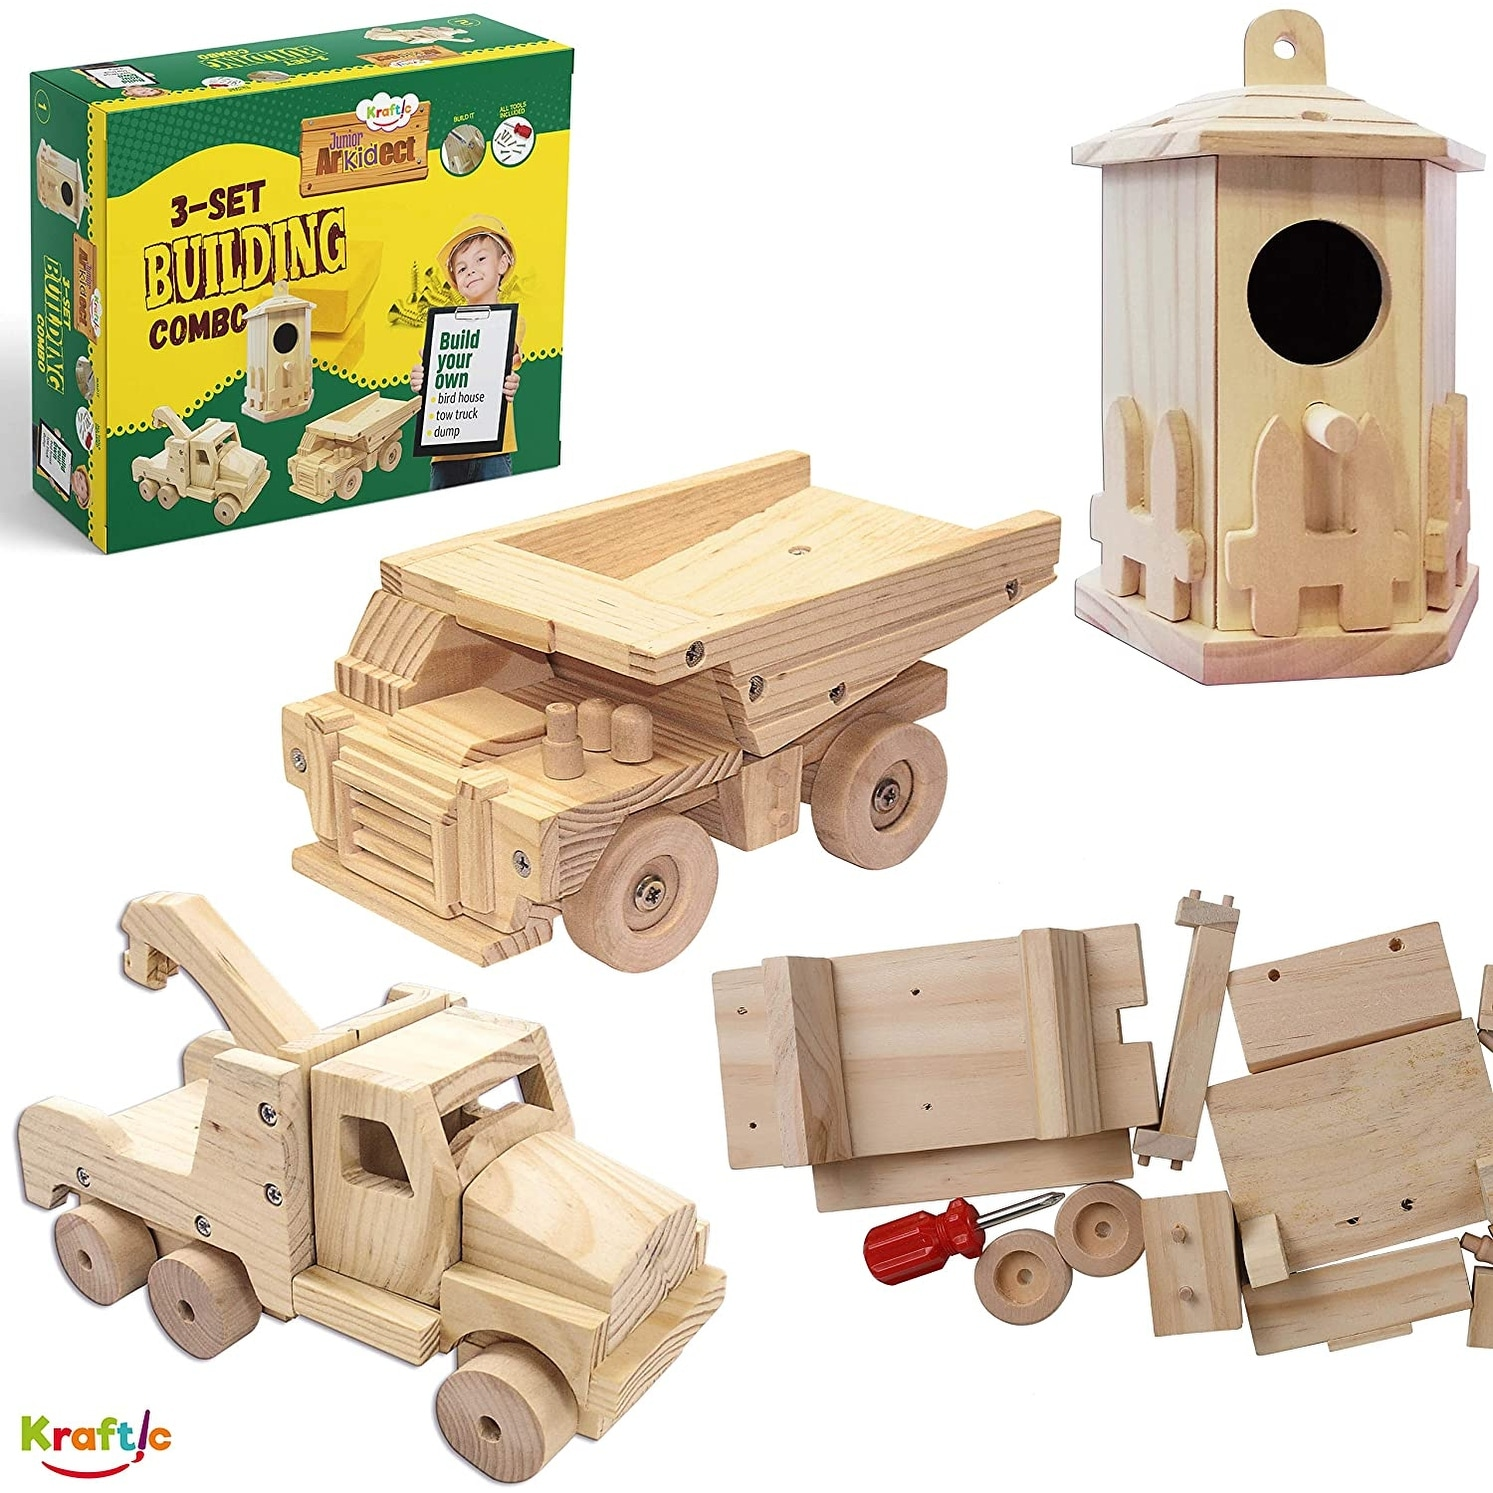 Kraftic Woodworking Building Kit for Kids and Adults Flatbed and Barn with 3 Educational DIY Carpentry Construction Wood Model Kit Toy Projects for Boys and Girls Jeep